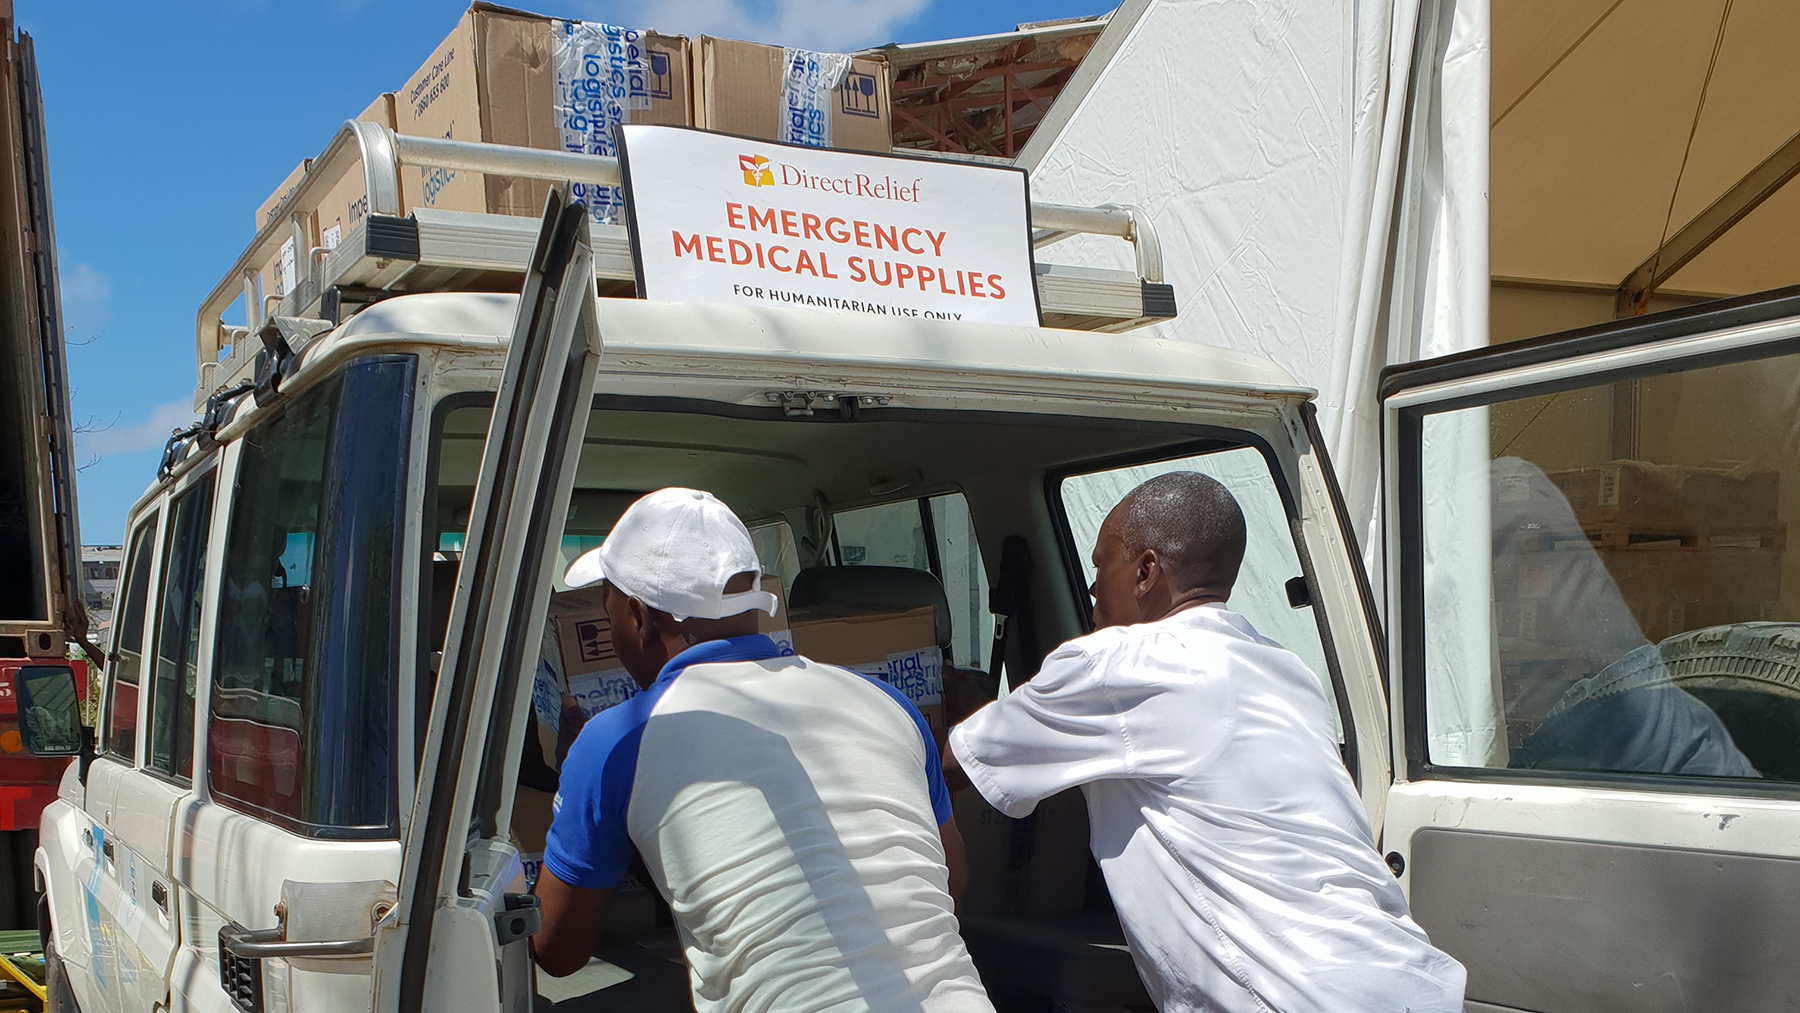 Medical staff from Health Alliance International unload medical supplies from Direct Relief at temporary clinics in Mozambique in April, 2019. Direct Relief has been supporting the work of local groups in Mozambique as they work to treat patients still impacted by the two cyclones that swept through the country earlier this year. (Photo courtesy of Health Alliance International)